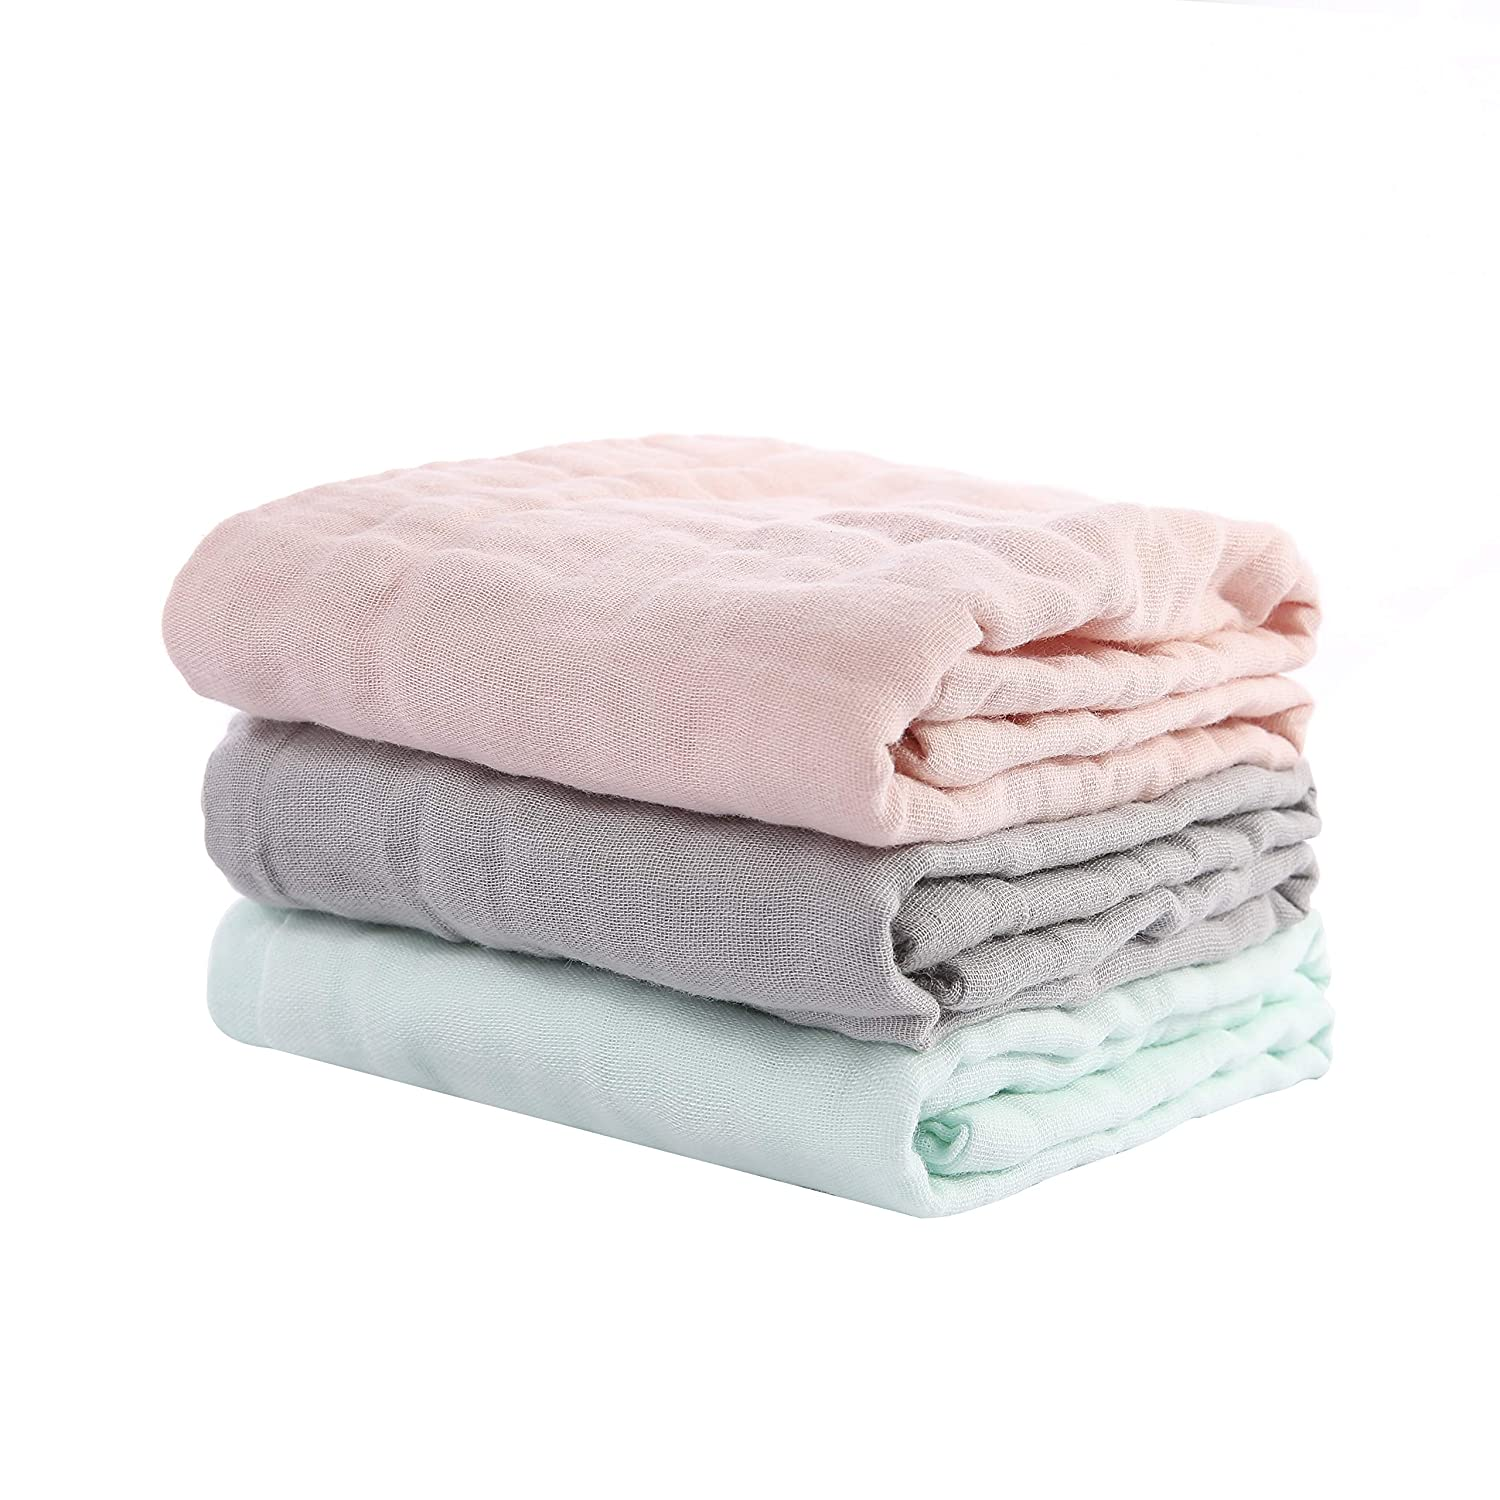 Multicolor-6pack DSDAI Baby Burp Cloths Cotton Washcloths 6 Layer Organic Muslin Burping Towel Absorbent Burp Rags Infant and Soft Towels for Unisex Baby,10x20 Inches